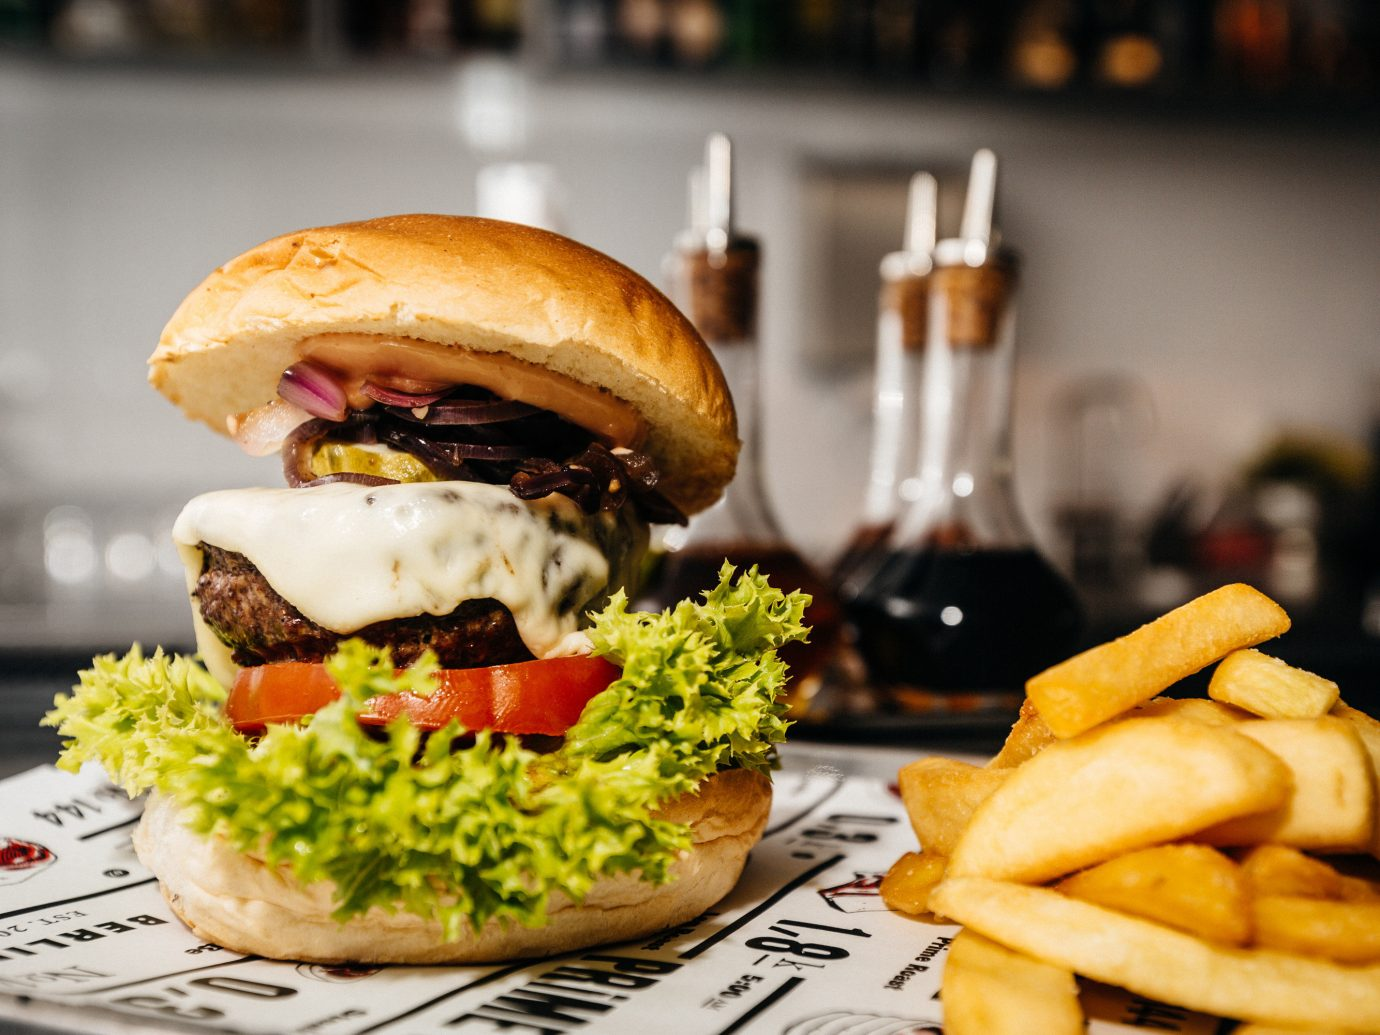 Berlin Boutique Hotels Germany Hotels Luxury Travel food hamburger indoor dish plate fries fast food meal snack food sandwich restaurant sense lunch cheeseburger brunch fast food restaurant tray french fries meat cuisine junk food potato